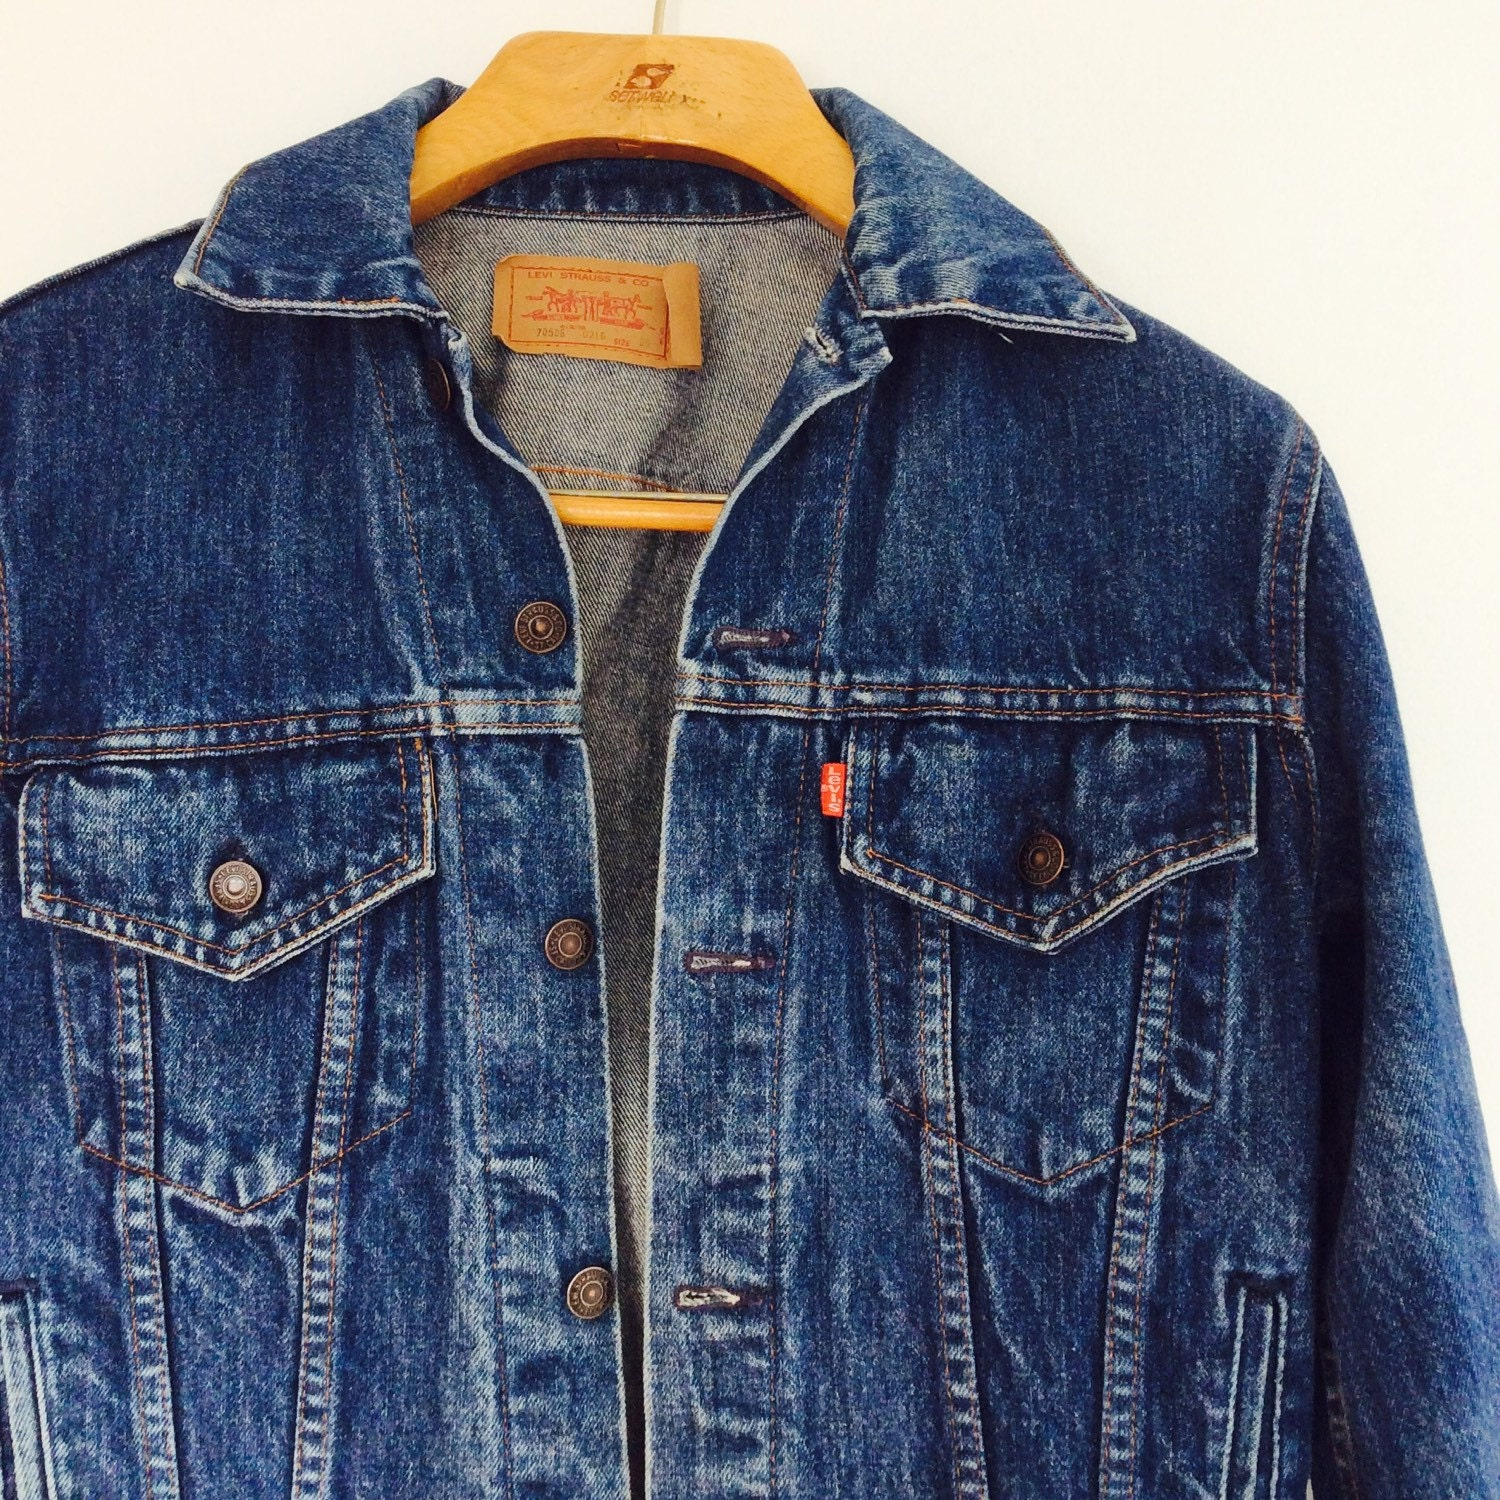 Get the best deals on vintage levi denim jacket and save up to 70% off at Poshmark now! Whatever you're shopping for, we've got it.